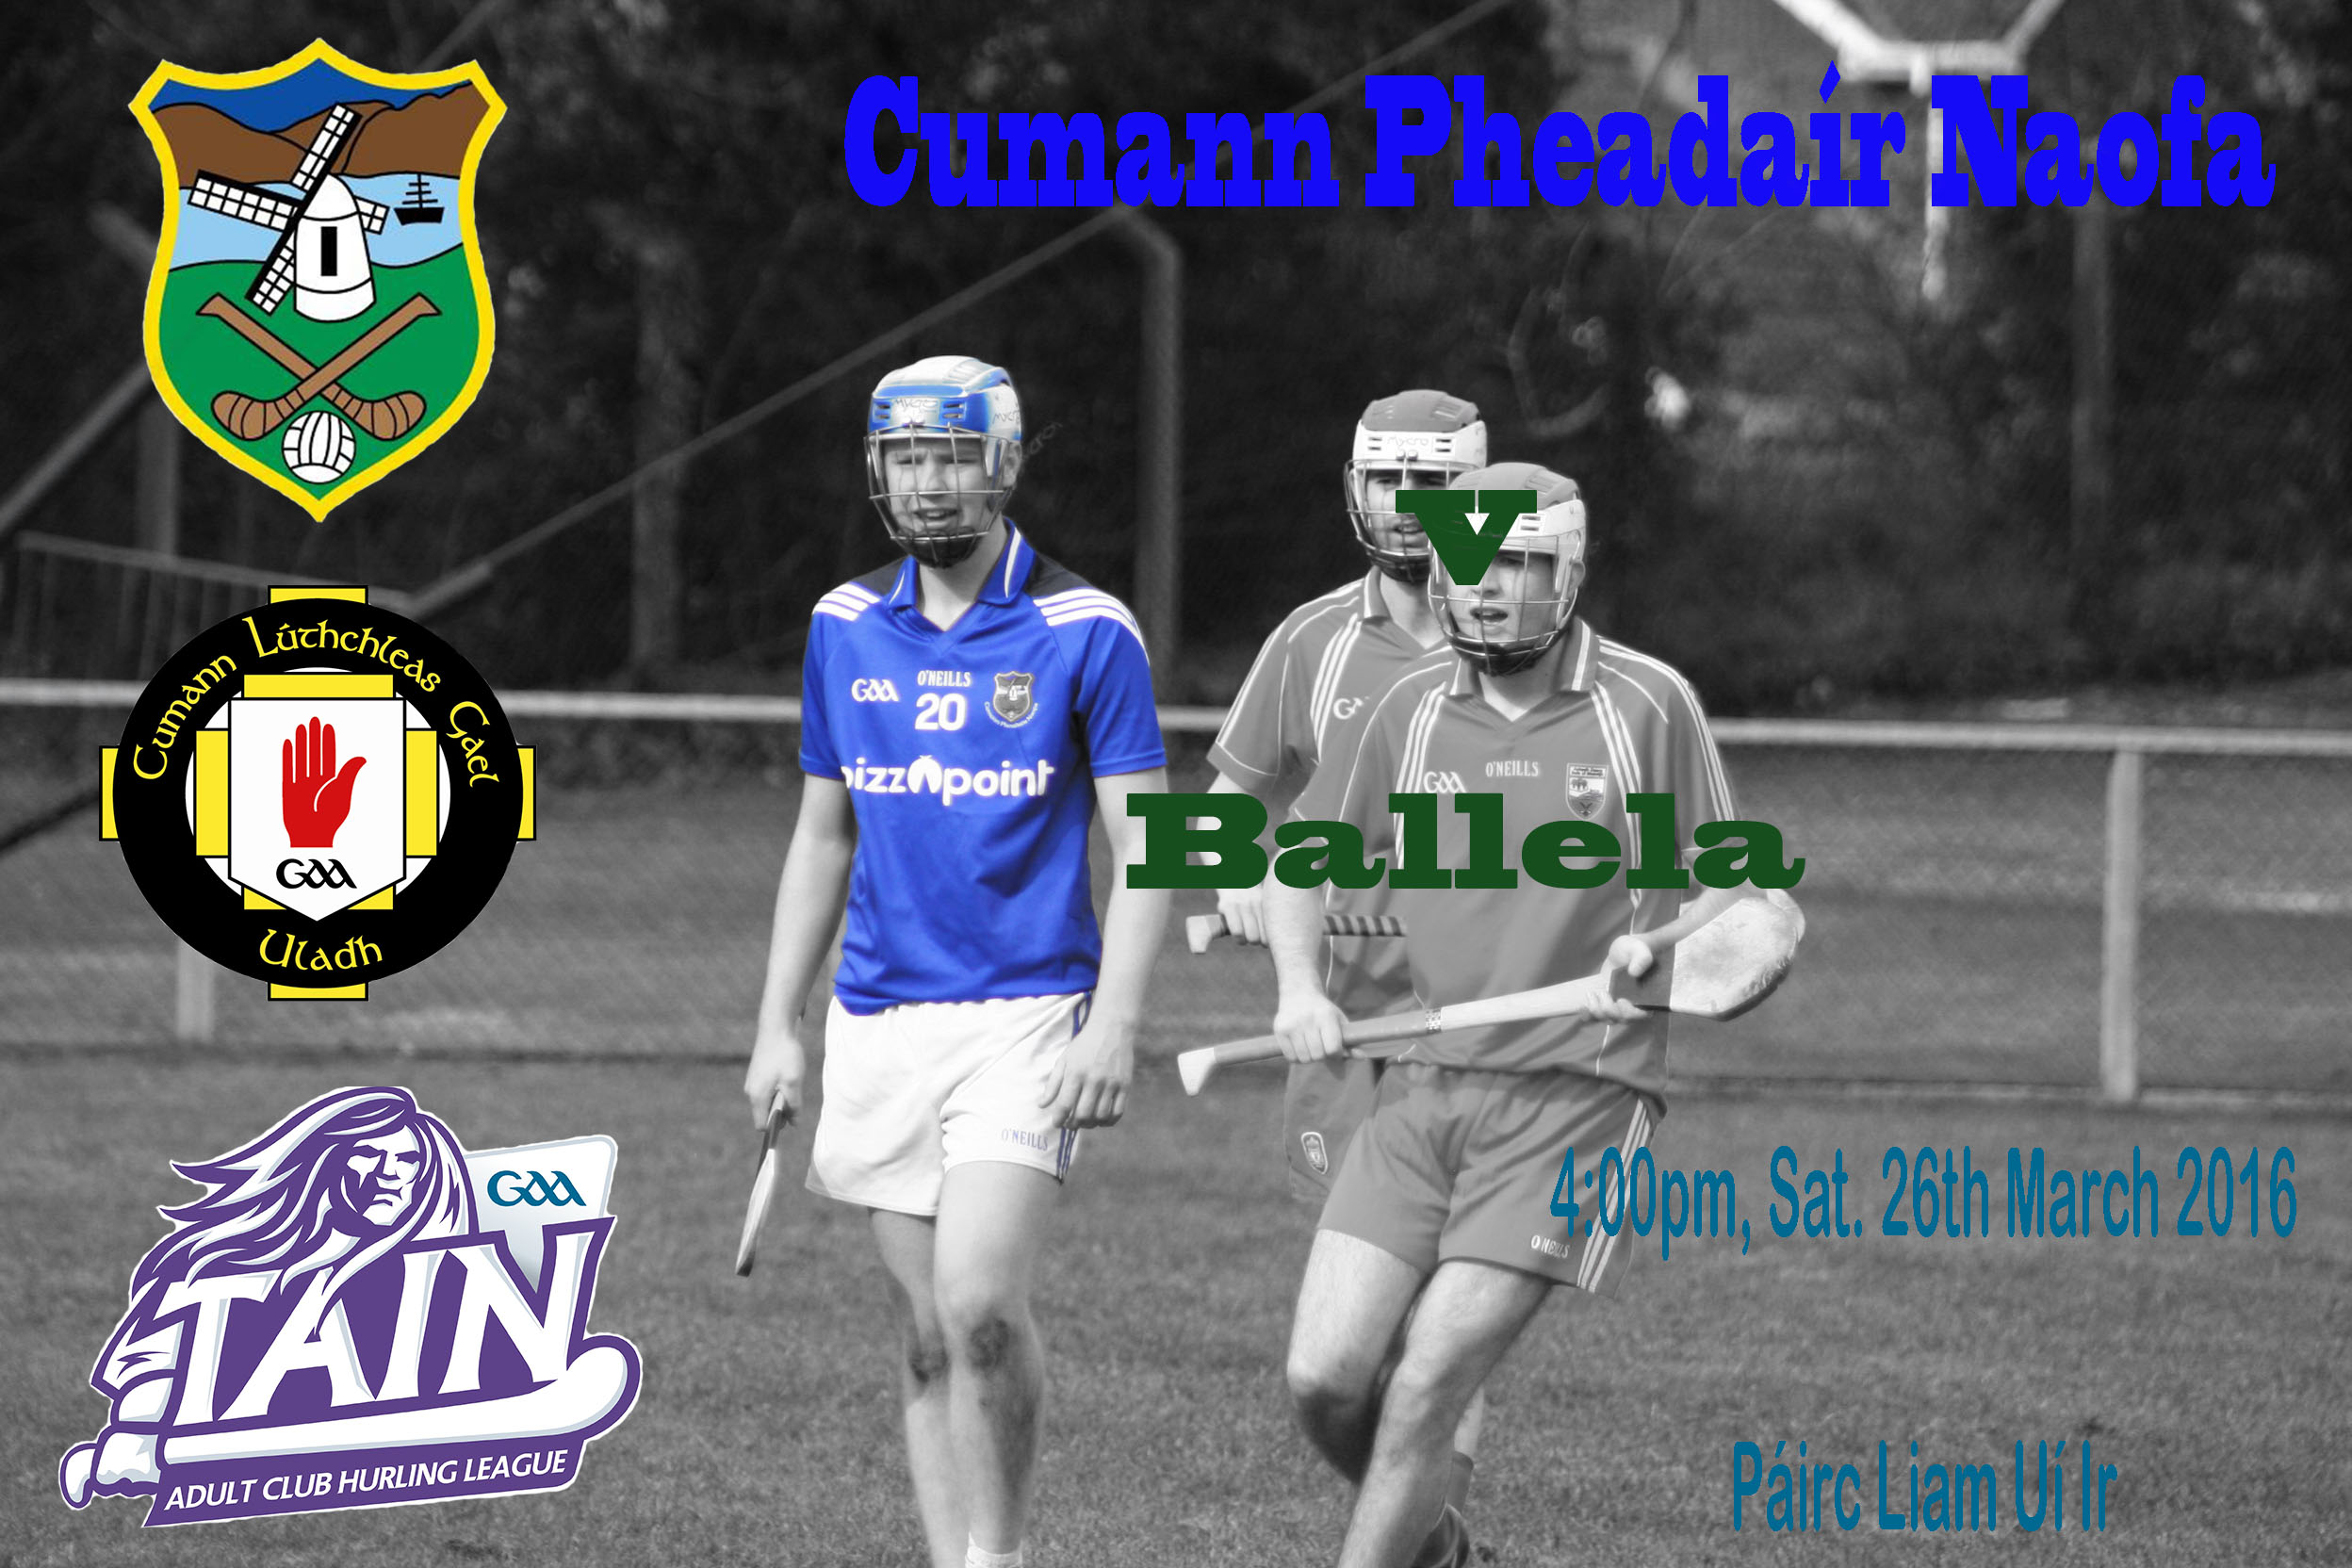 Seniors at home to county Champions, Ballela in round 1